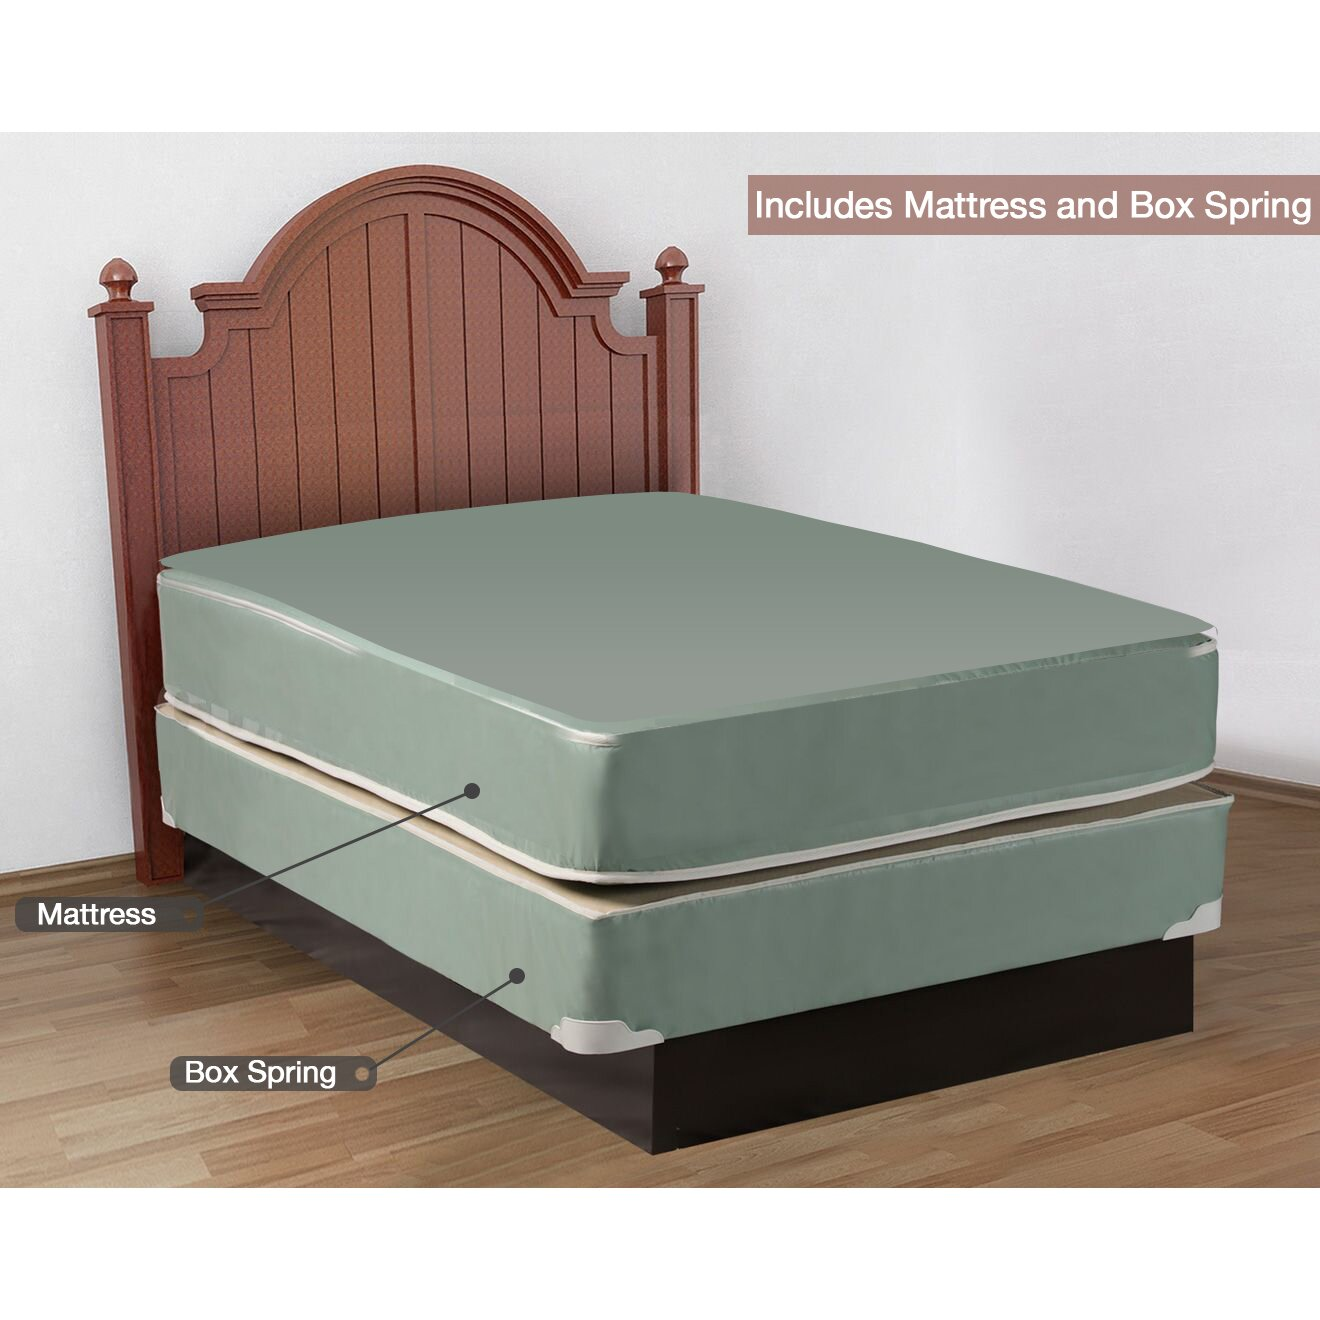 spinal solution 15 mattress with box spring reviews. Black Bedroom Furniture Sets. Home Design Ideas